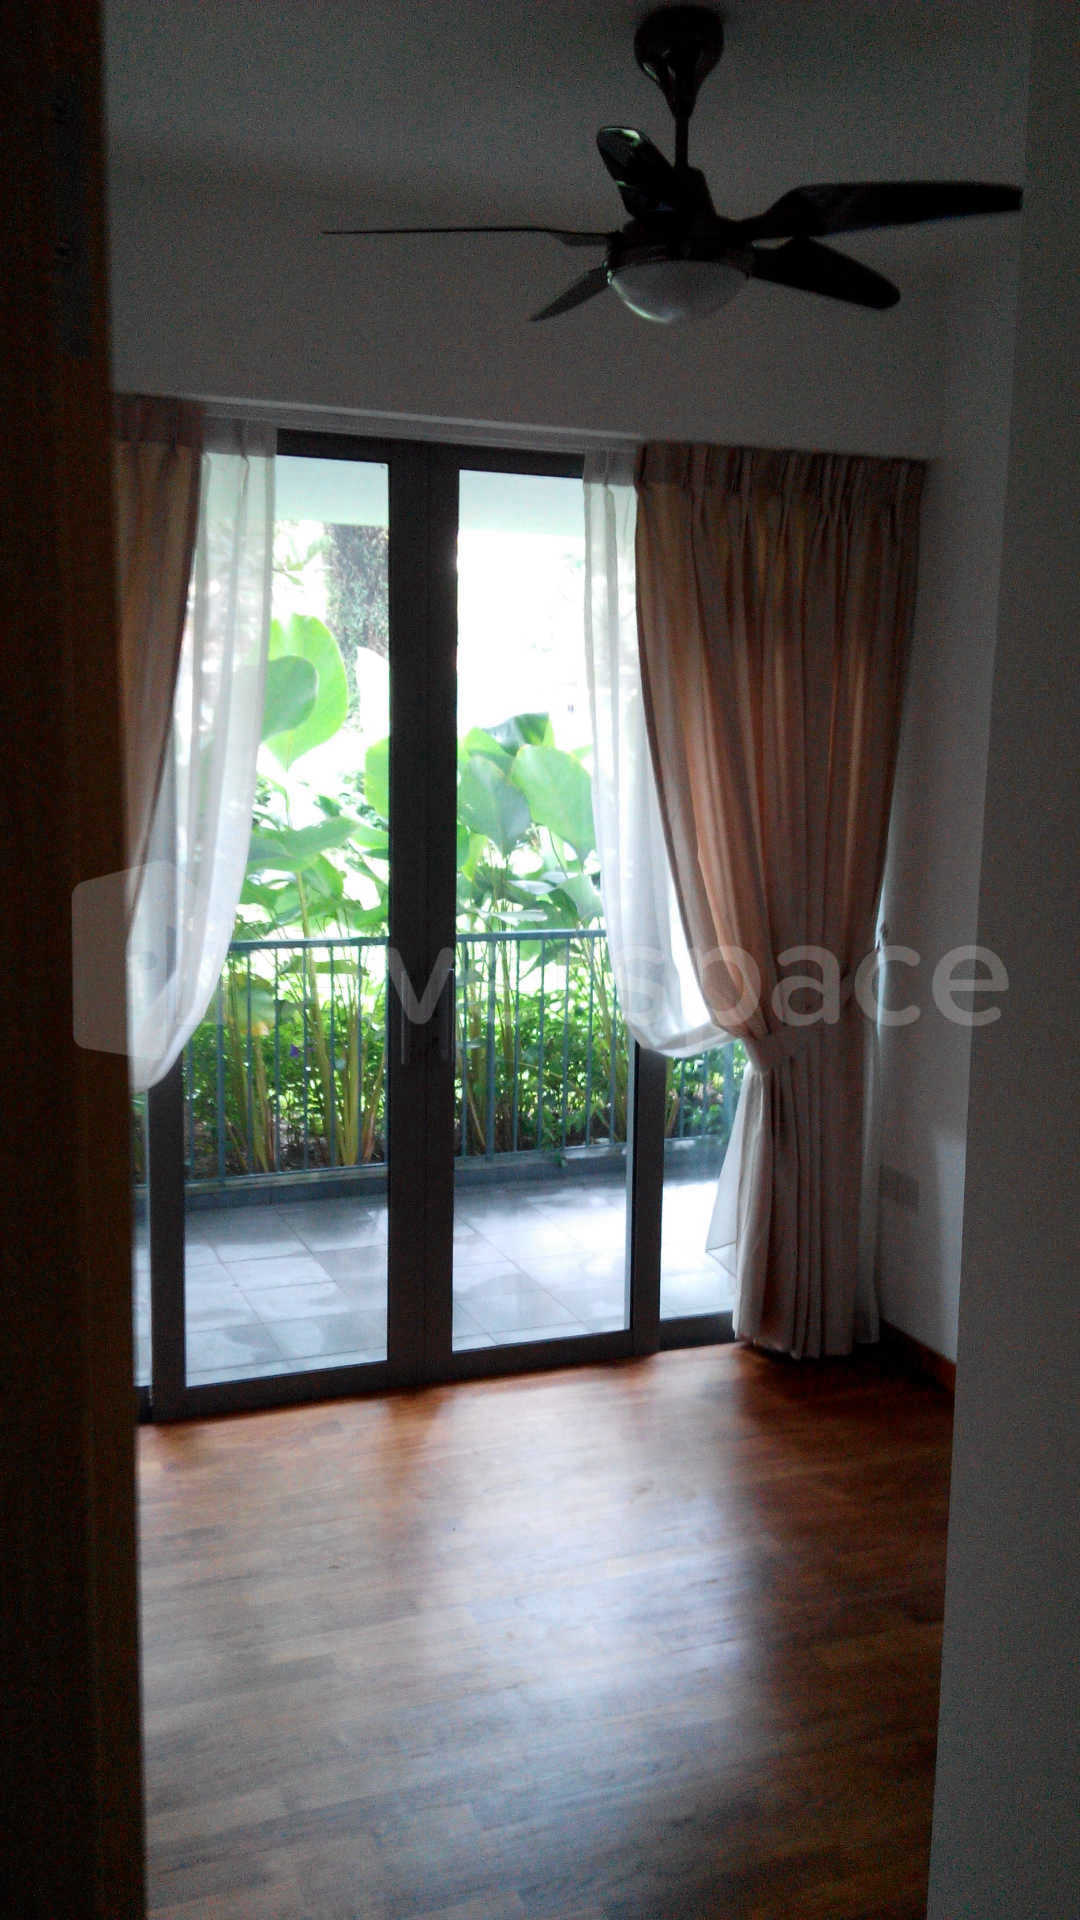 2 Canberra drive, District 27 Singapore